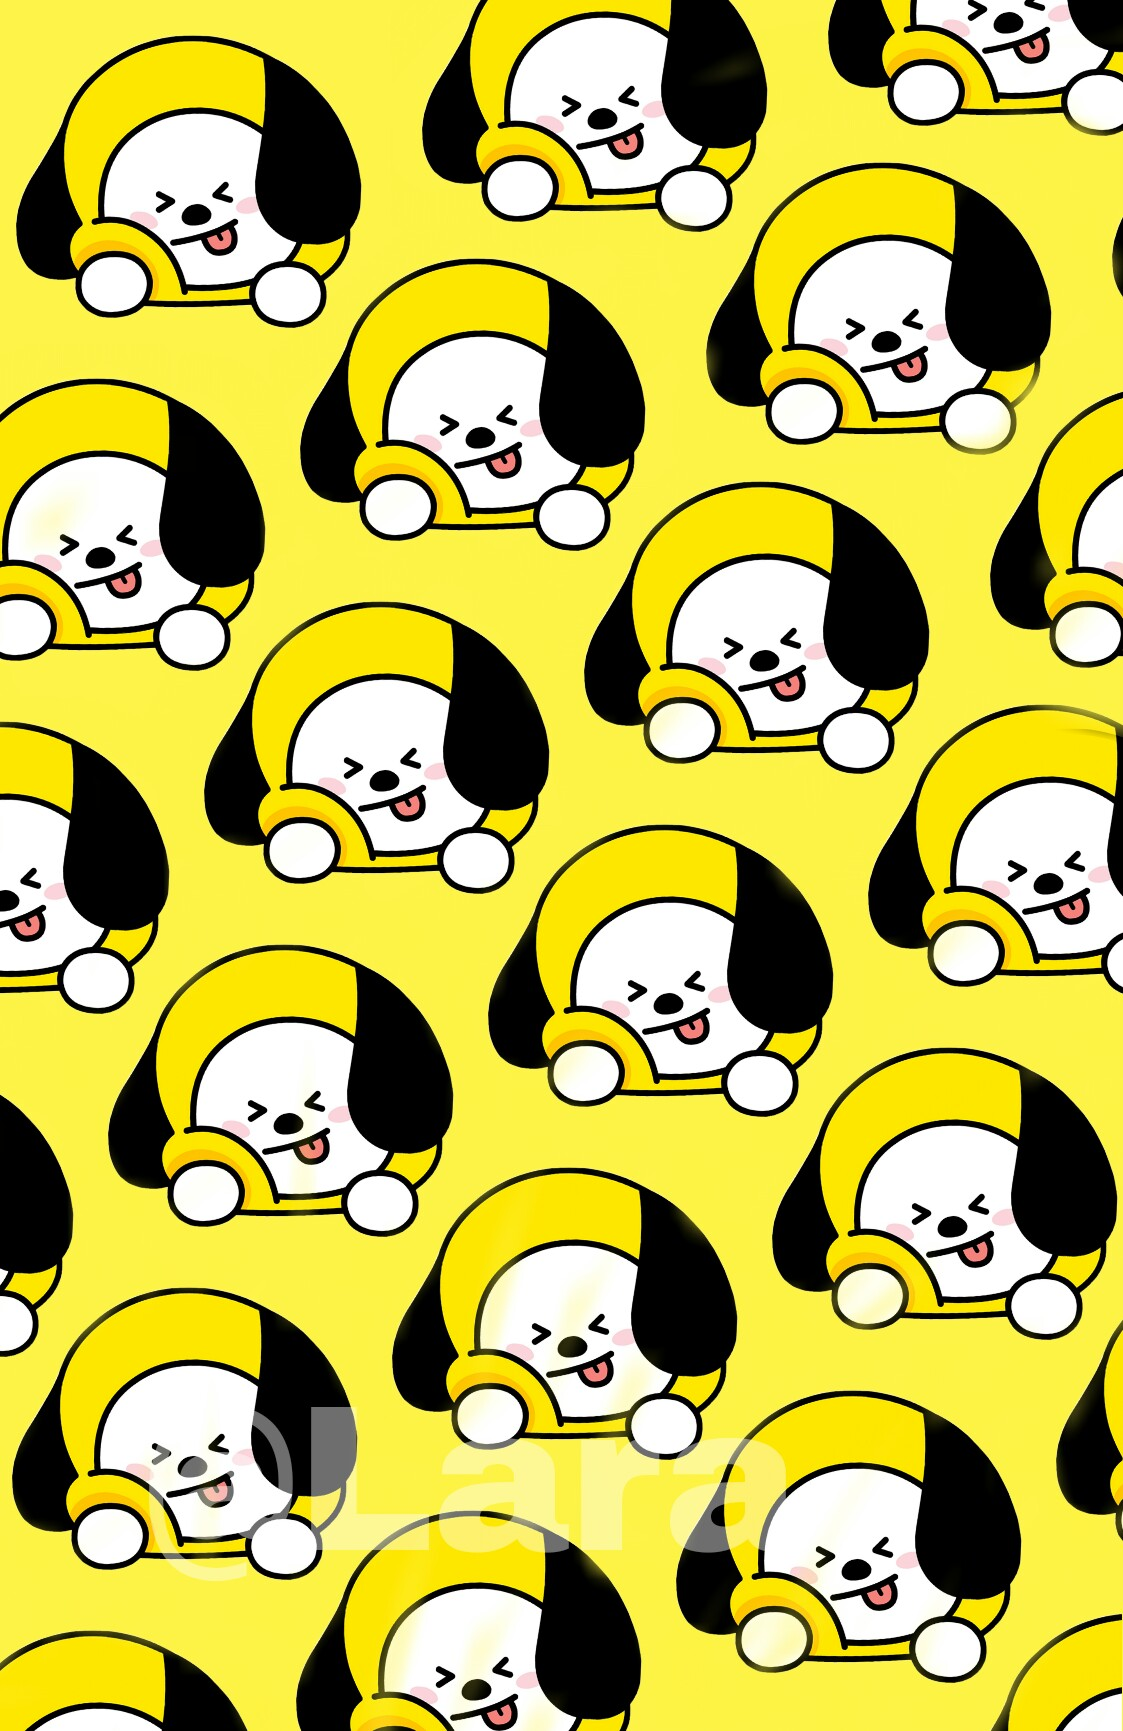 Free Download Bts Bt21 Chimmy Jimin Kawaii Wallpaper Freetoedit 1123x1731 For Your Desktop Mobile Tablet Explore 27 Chimmy Wallpapers Chimmy Wallpapers Bt21 Chimmy Wallpapers 치미 chimi) is a main character, and he is one of the eight primary characters in bt21. free download bts bt21 chimmy jimin